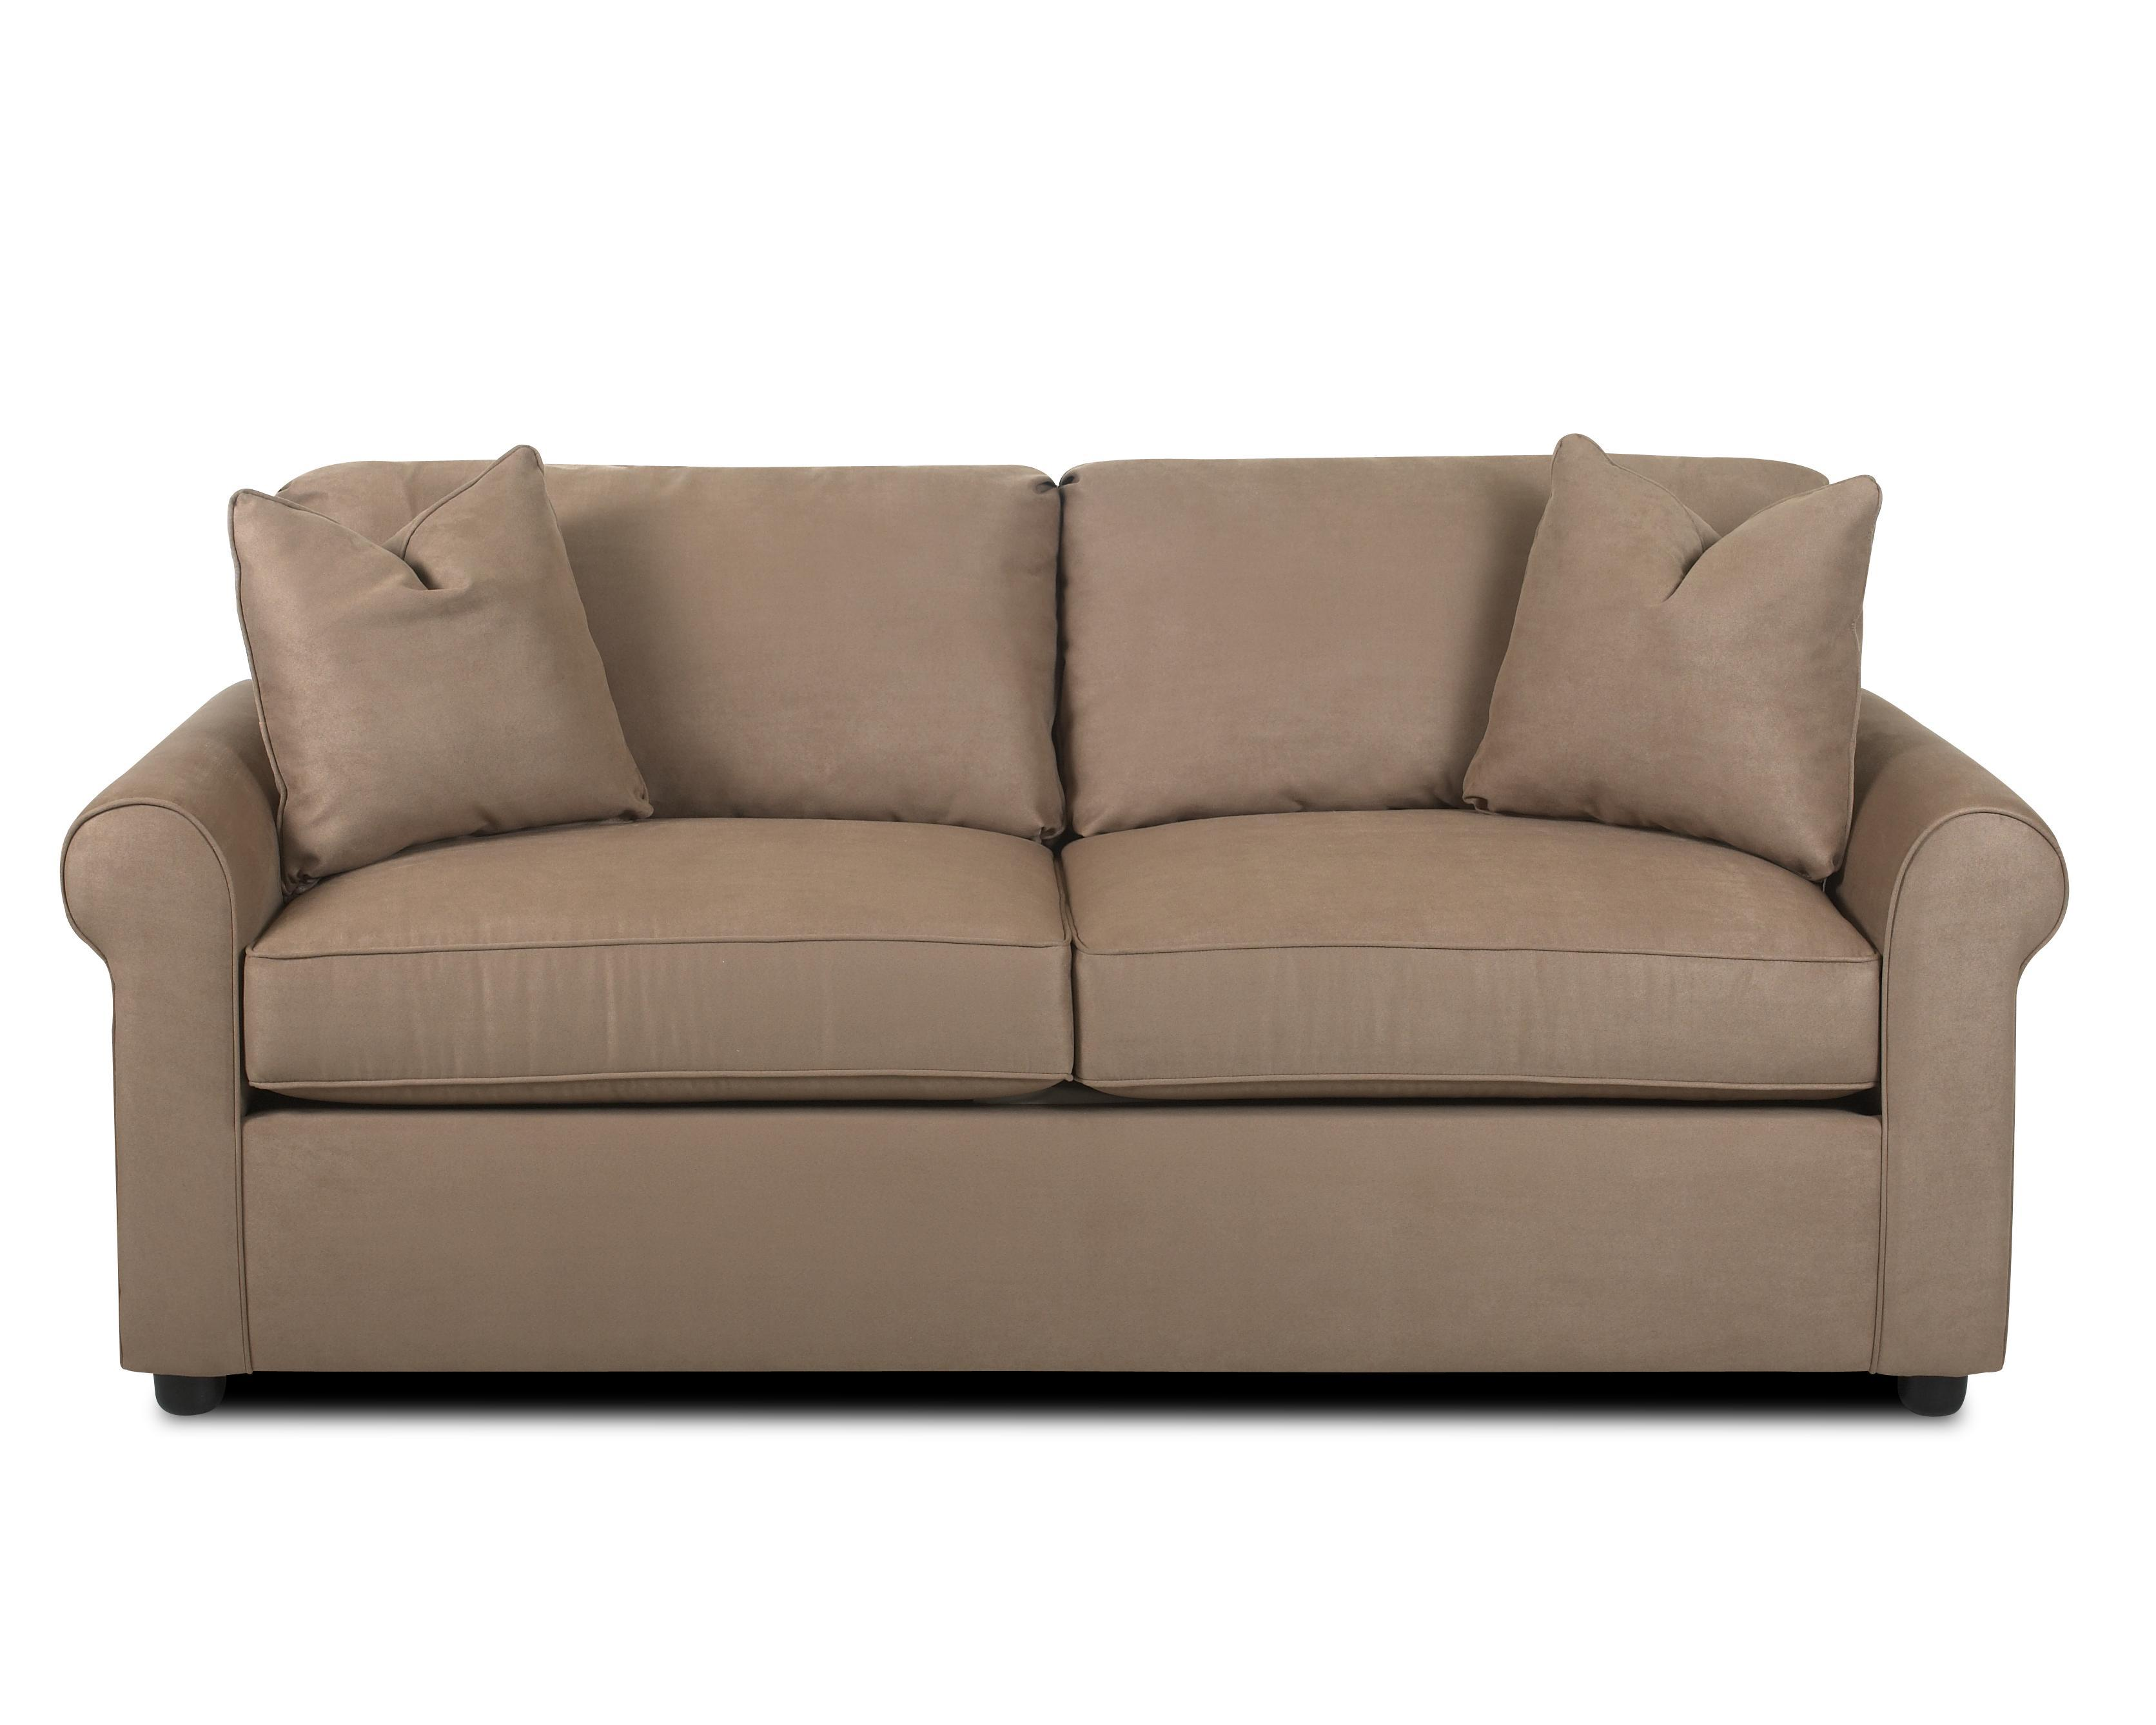 Klaussner Brighton Upholstered Sofa With Rolled Arms